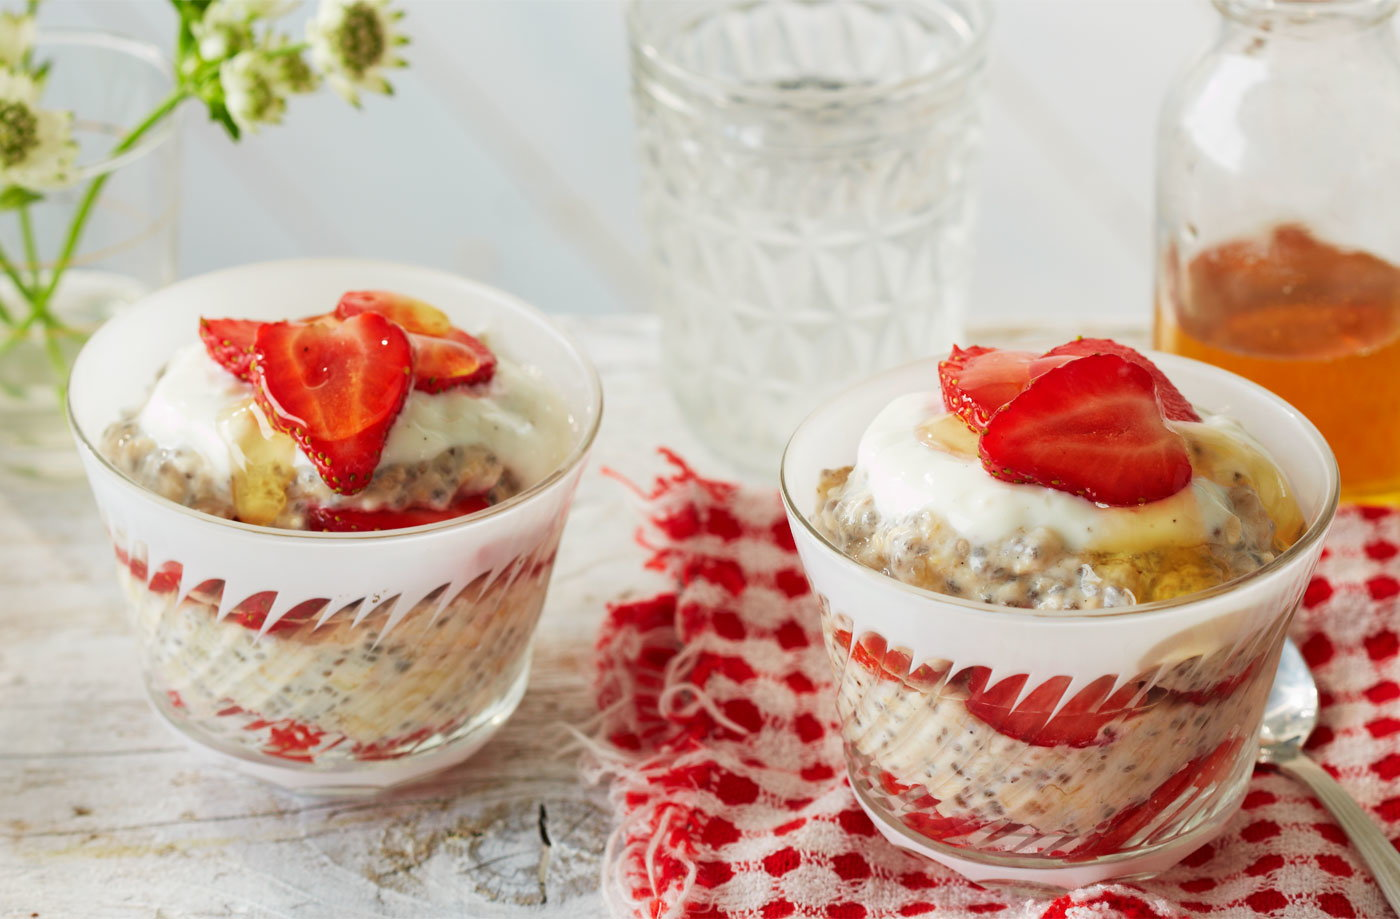 Strawberry, banana and oat chia cups recipe